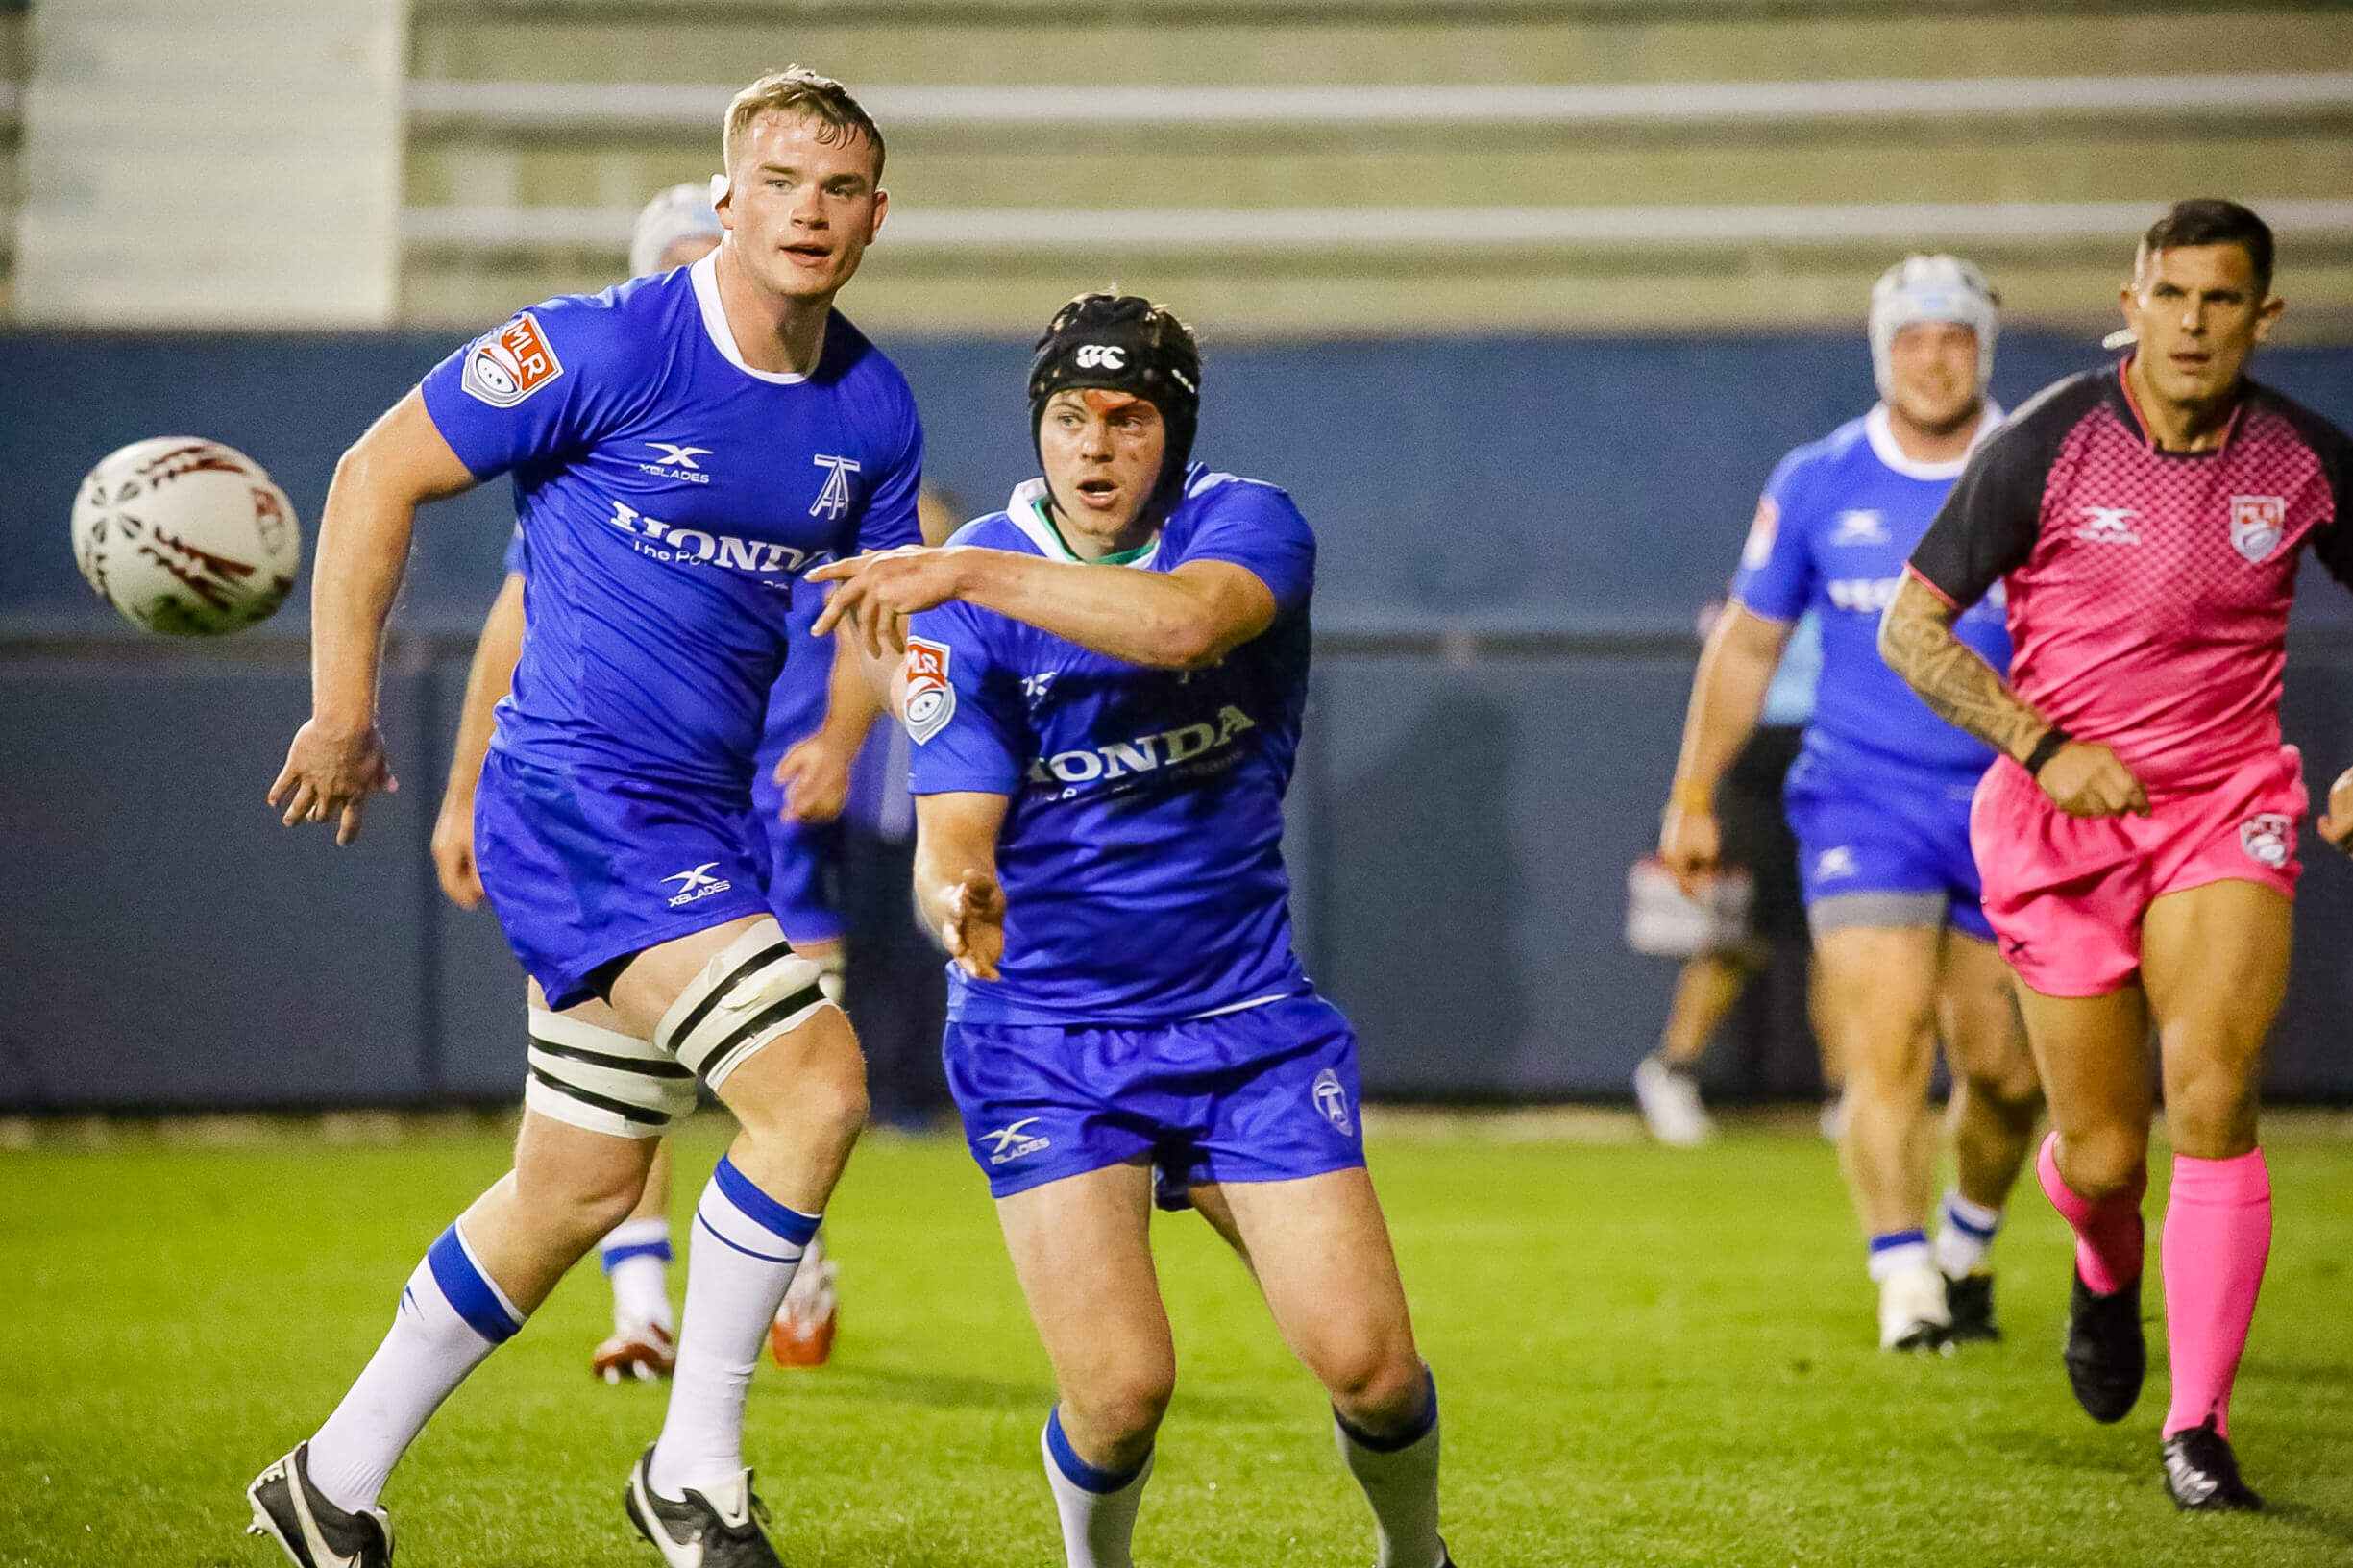 Major League Rugby 2019 Power Rankings: Round 7 - The ...